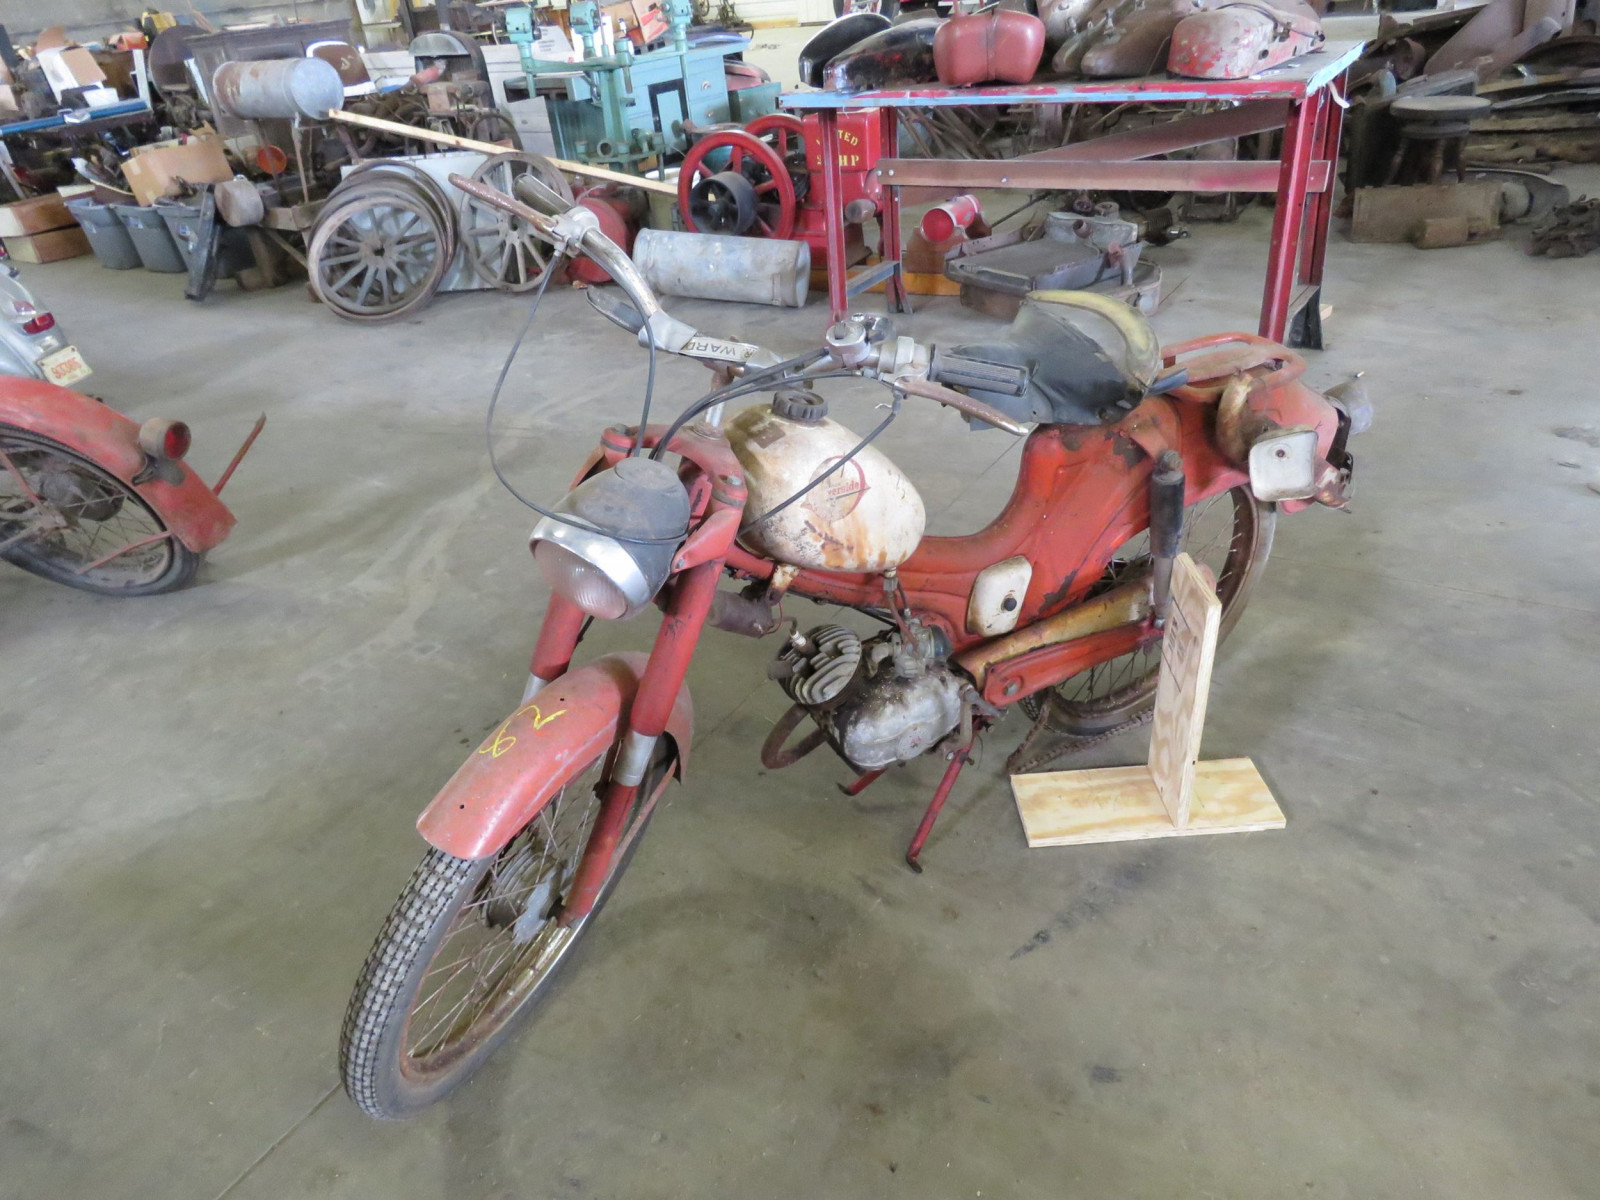 Vintage Wards Motorcycle Project - Image 1